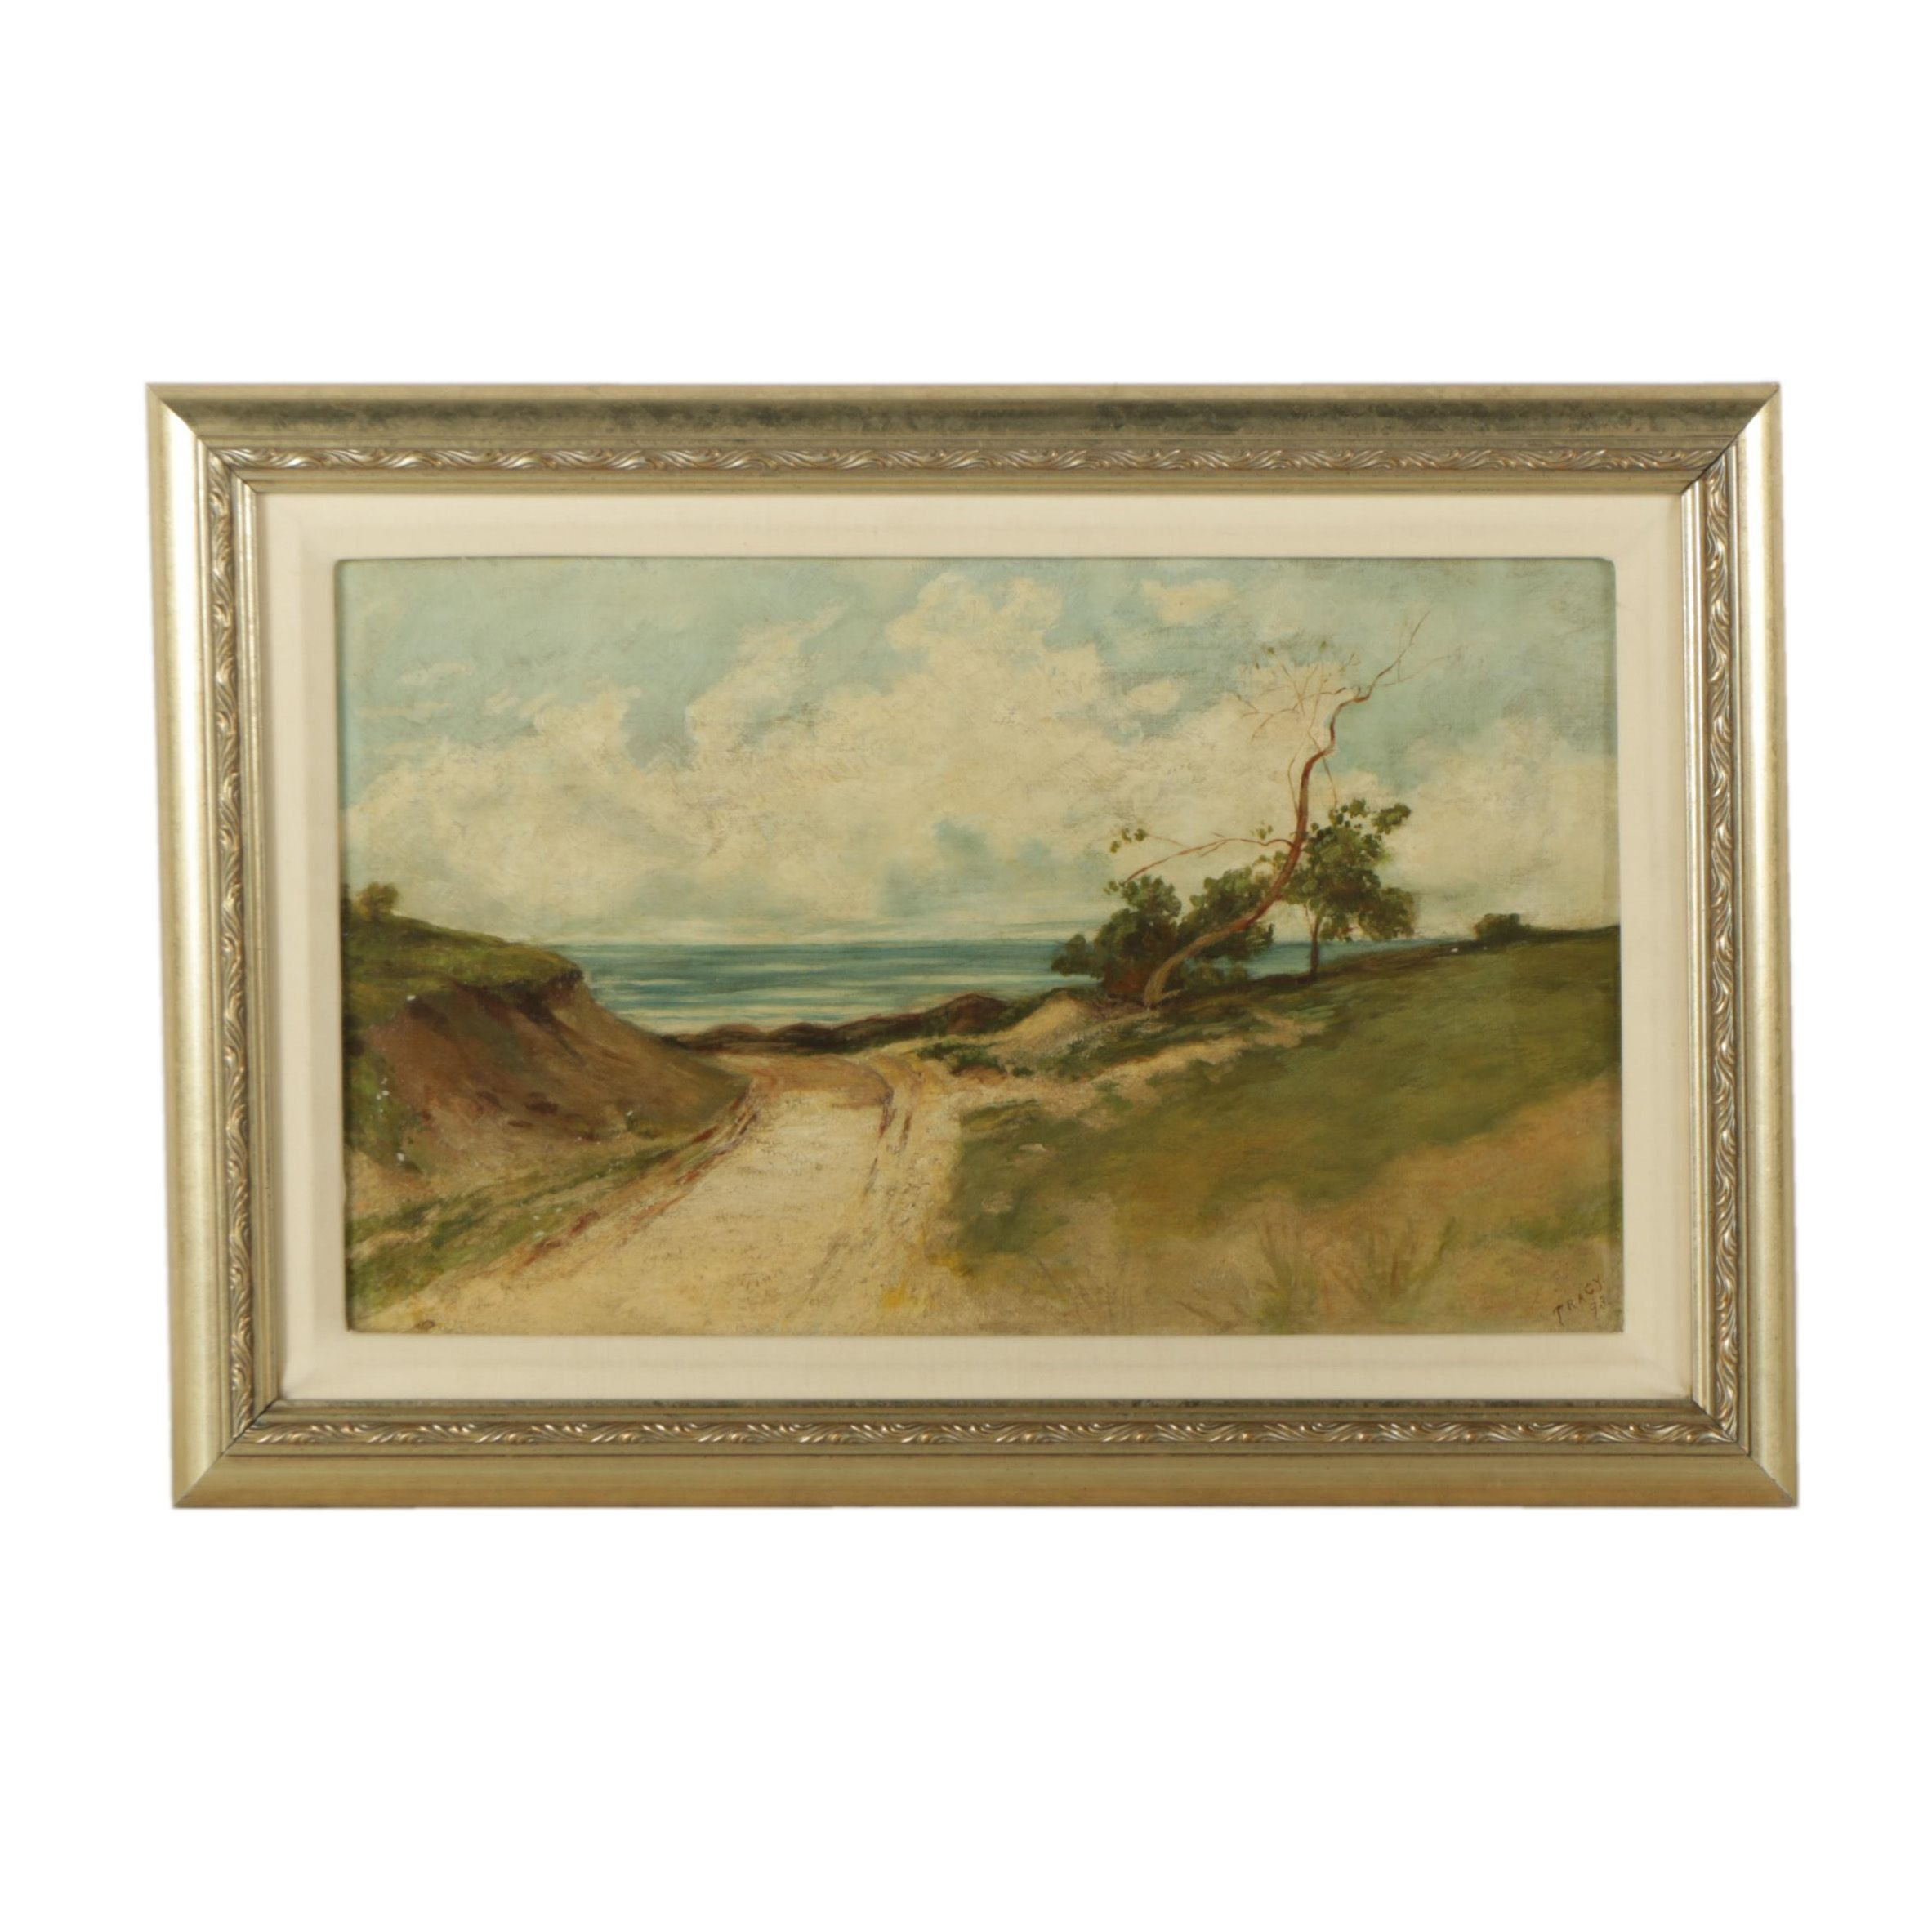 Tracy Oil Painting on Canvas of a Seaside Landscape